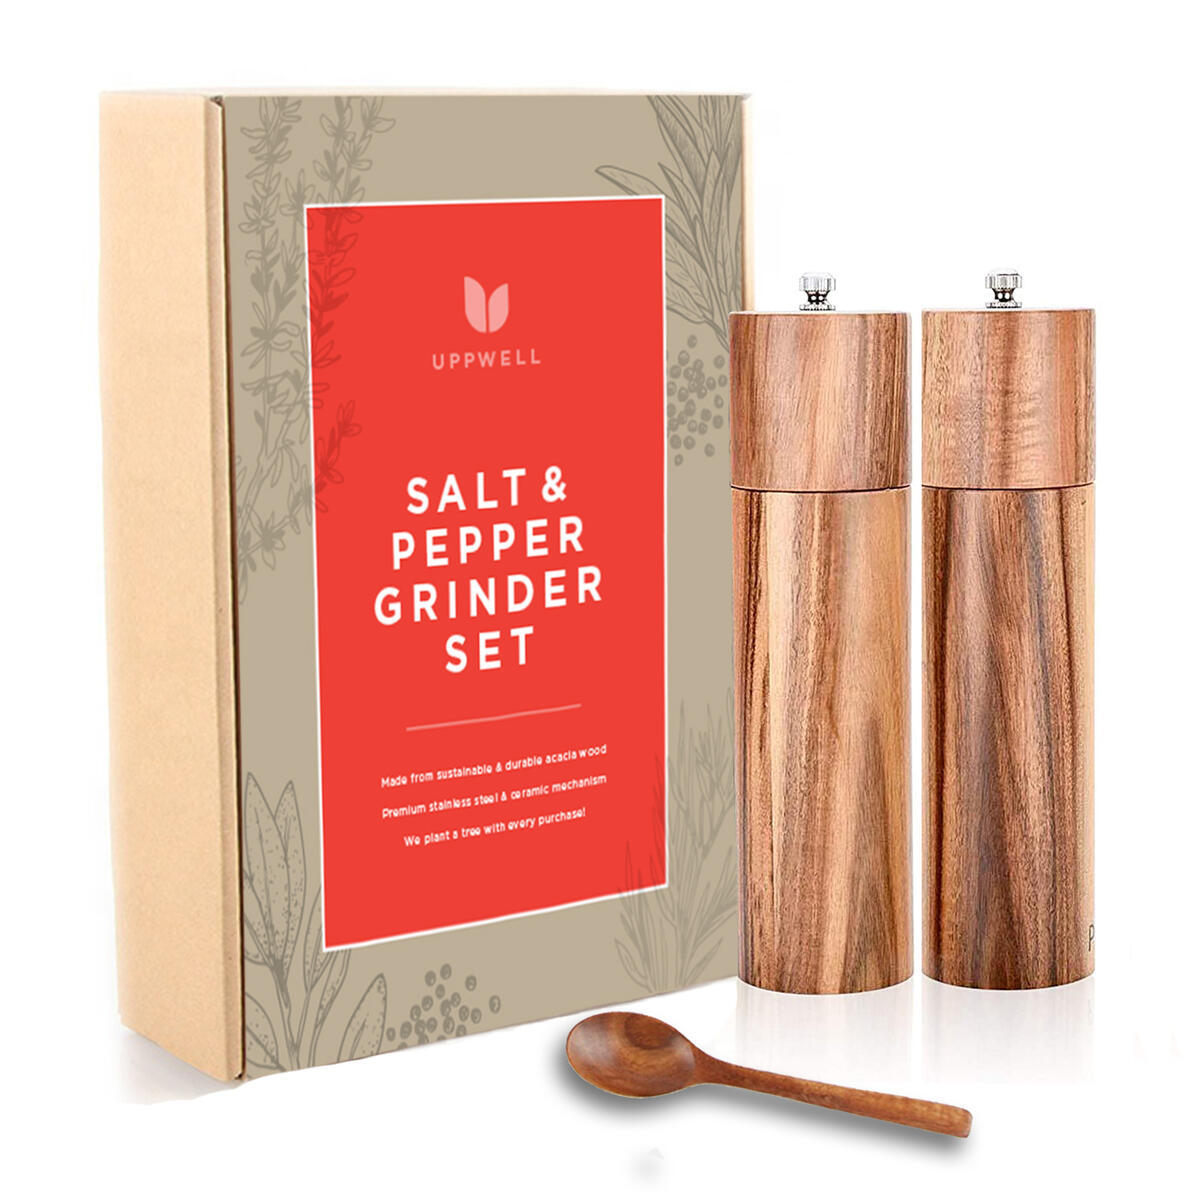 Salt and Pepper Grinders Refillable Set, Stylish and Sustainable, Beautiful Gift Box, Premium Materials with Bonus Acacia Spoon, We Plant A Tree With Every Purchase!